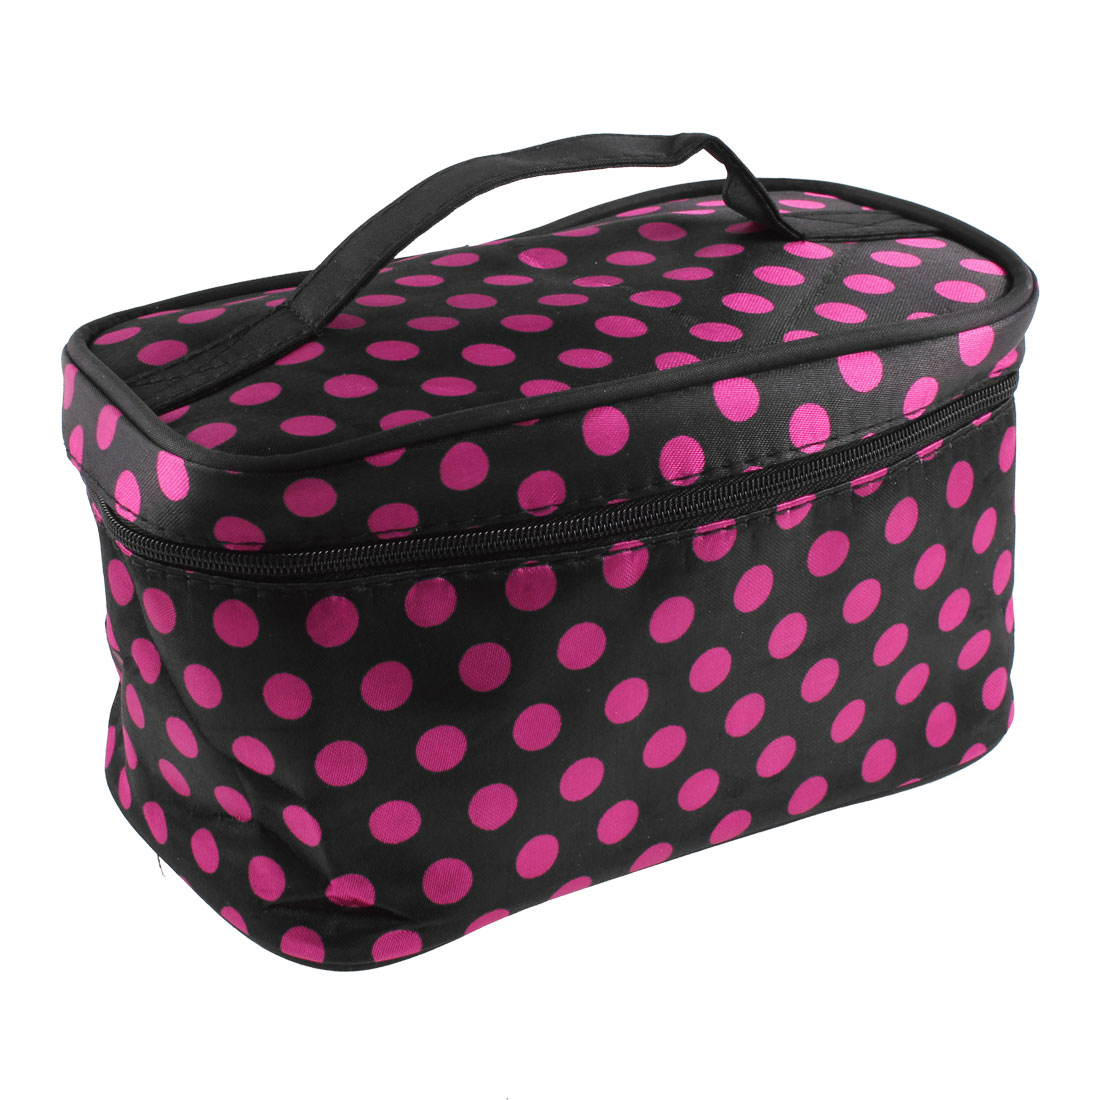 Lady Zipper Closure Dots Pattern Cosmetic Bag Makeup Case Holder